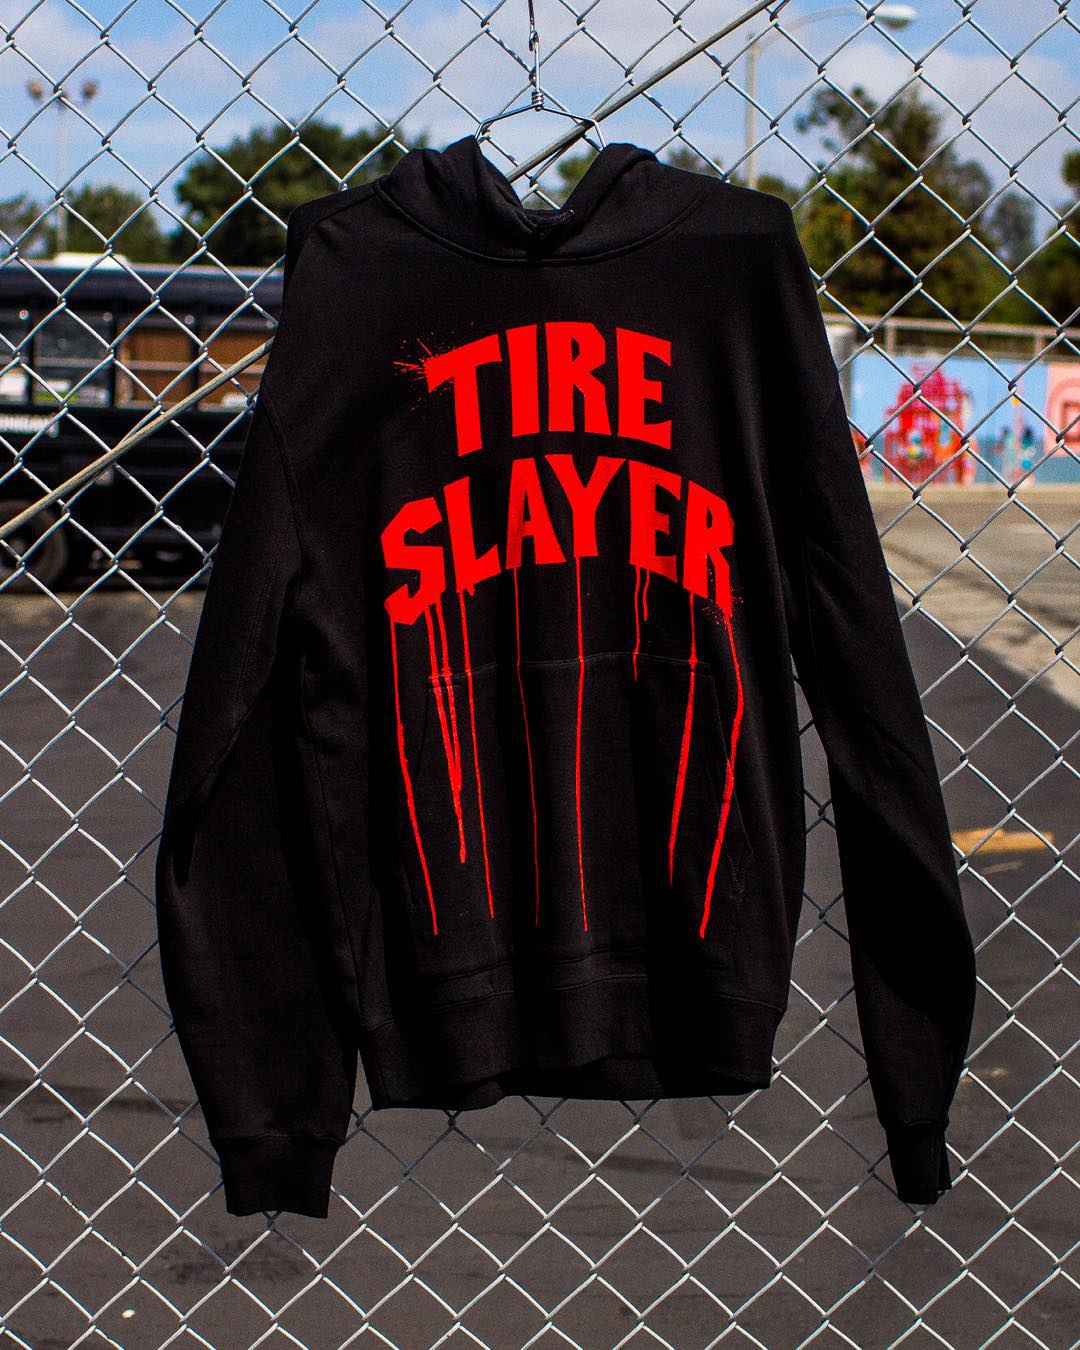 #TireSlayerAppreciateWeek may be coming to an end but the Tire Slayer pull over hoodie will still be available on #hooniganDOTcom. Tag your appreciation and maybe it will end up on our page! #burniesforever